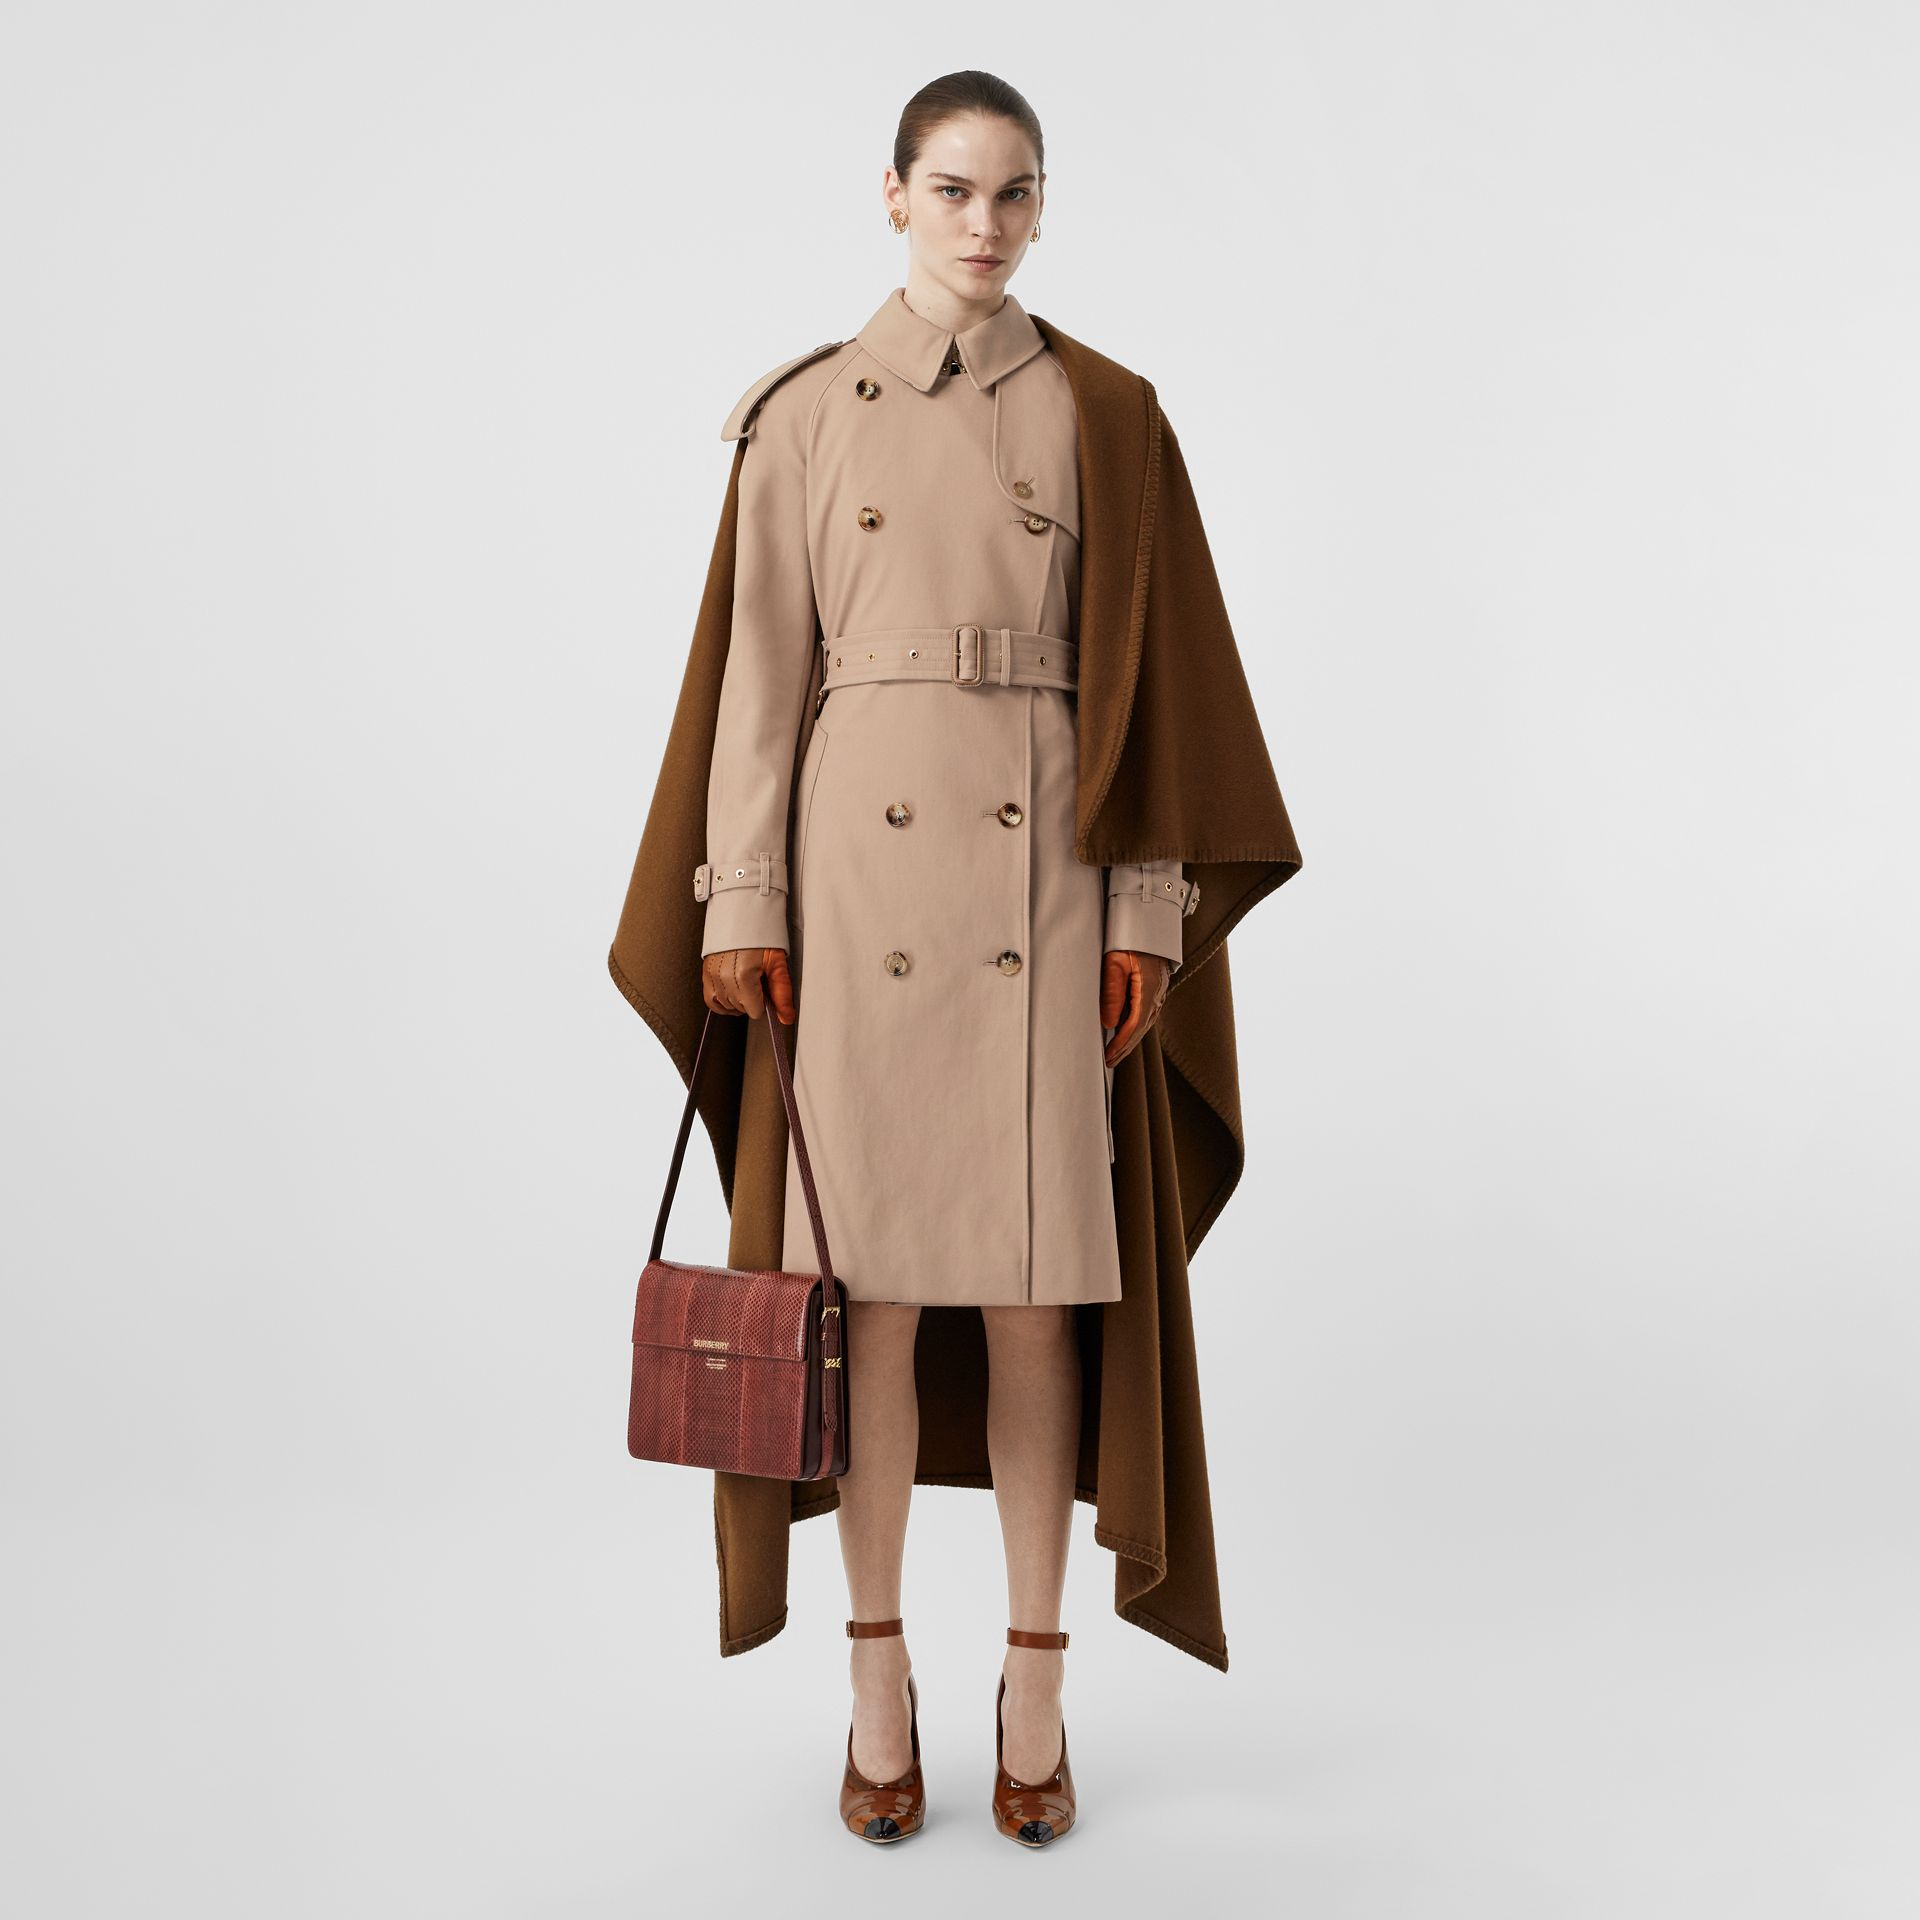 Blanket Detail Cotton Gabardine Trench Coat in Camel - Women | Burberry United States - gallery image 0